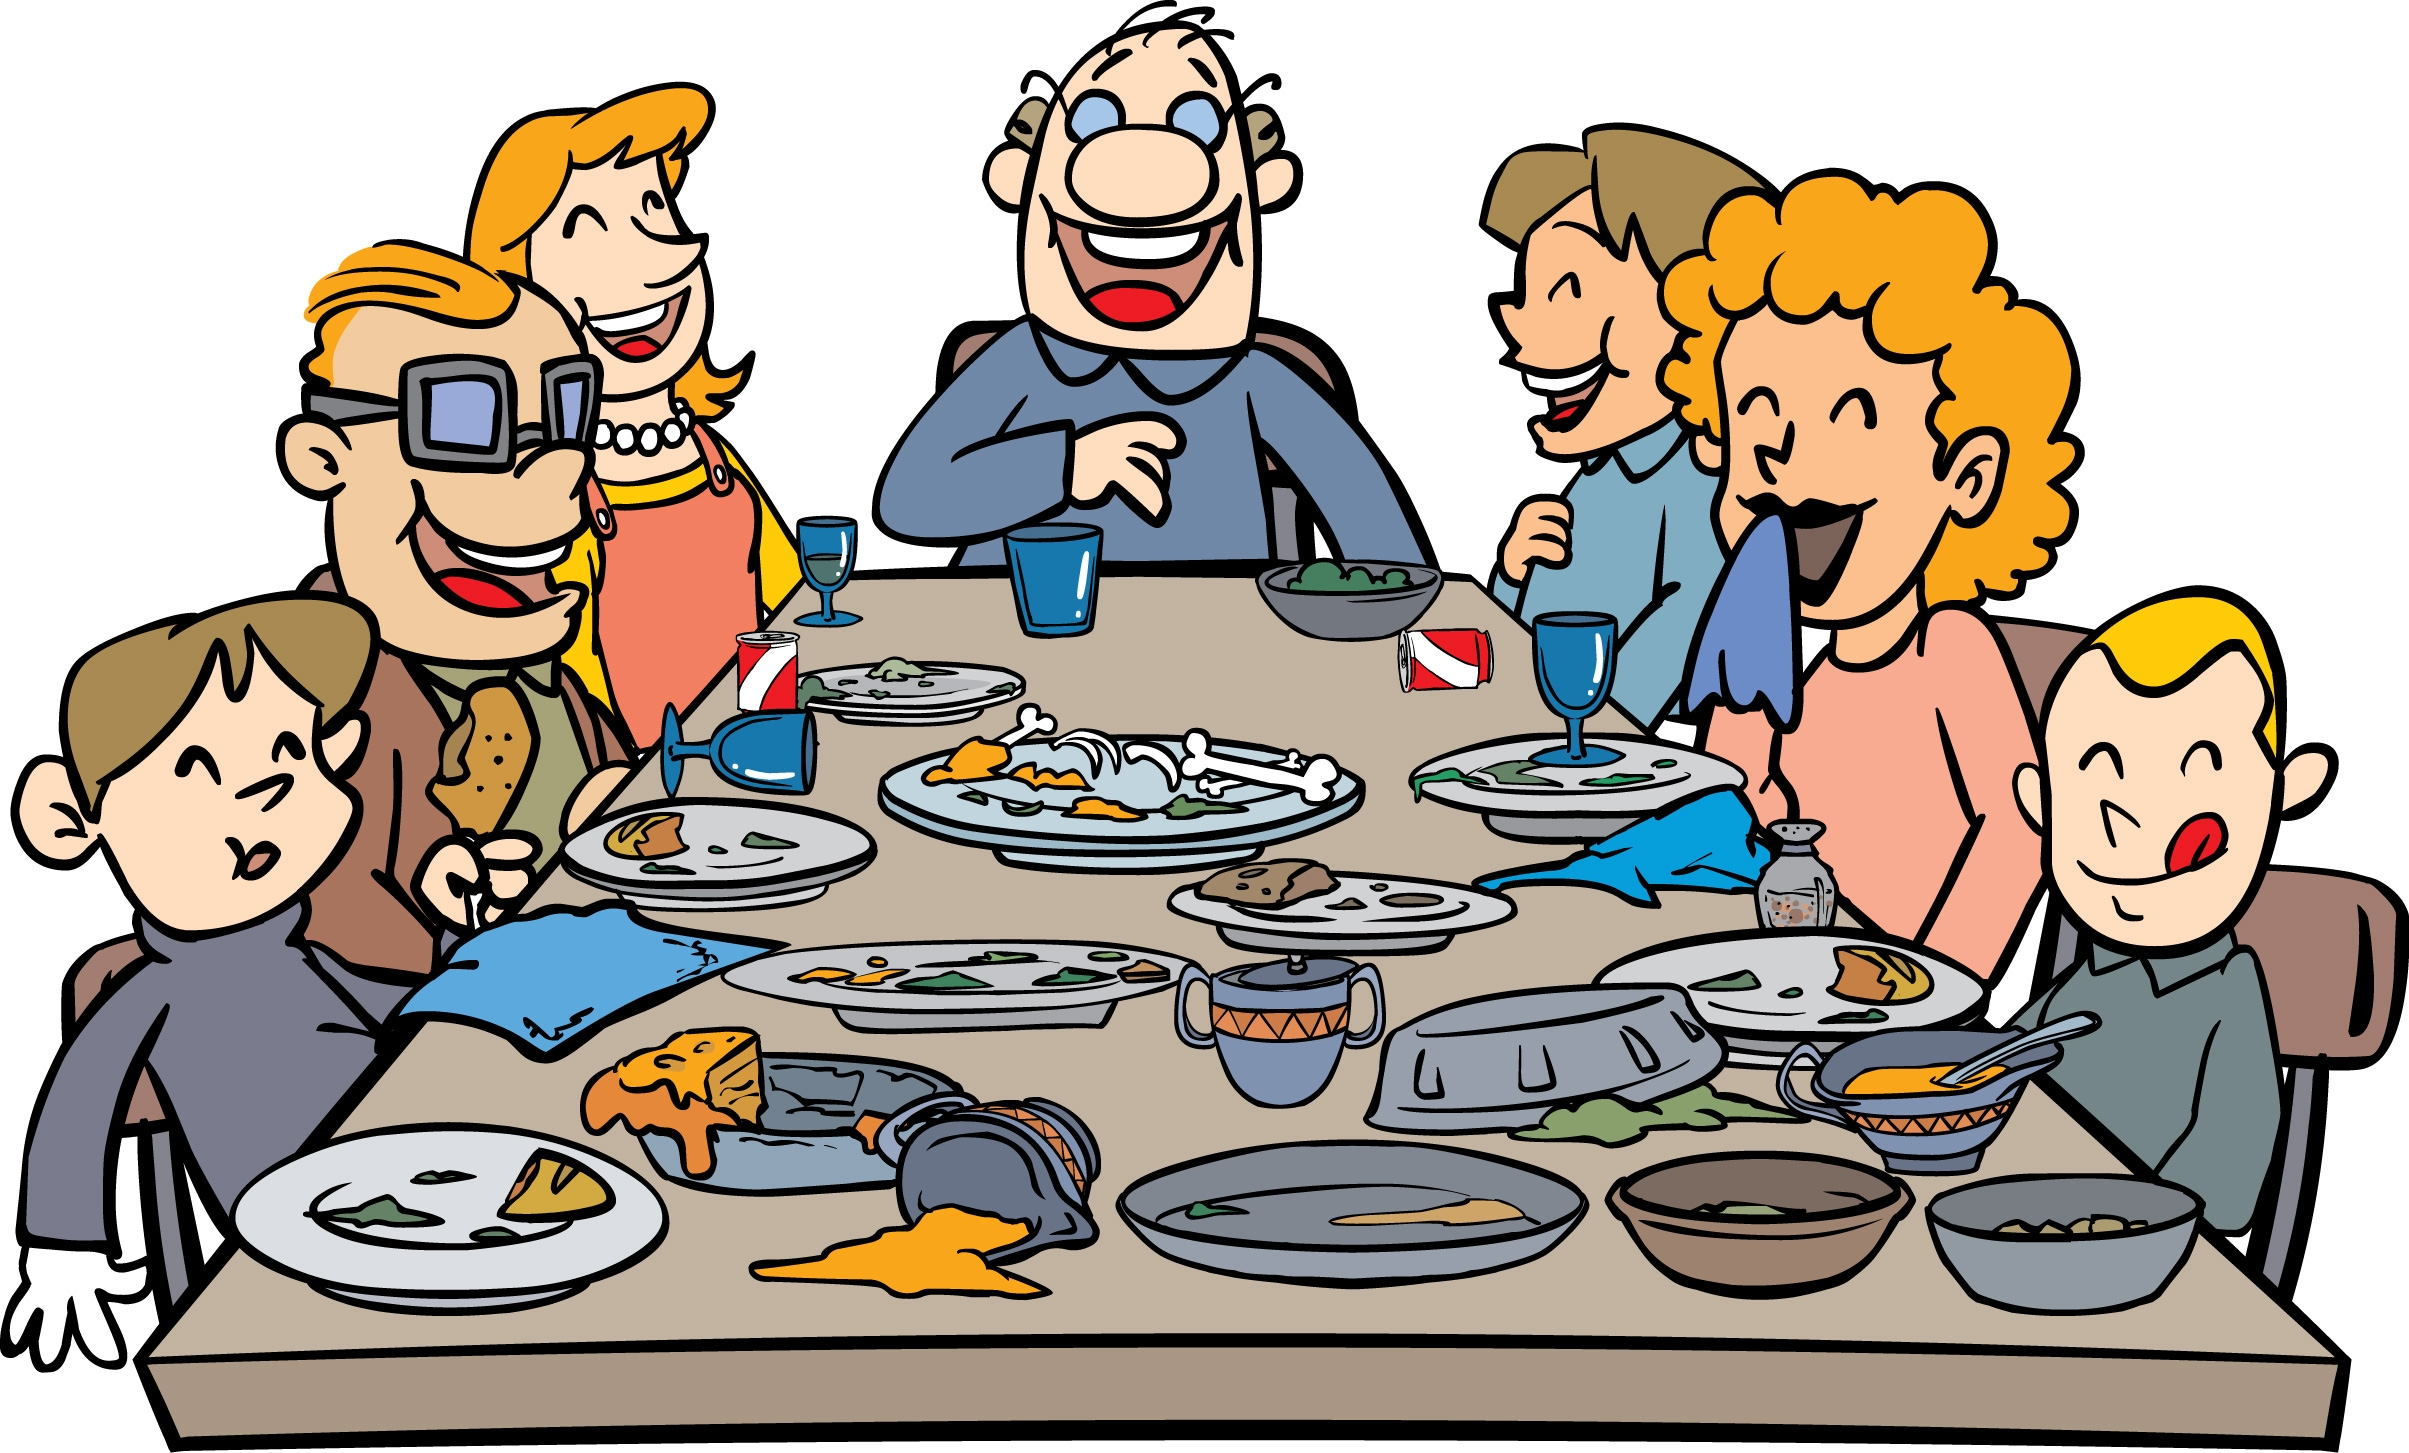 Feast clipart home cooked meal. Group dinner free download